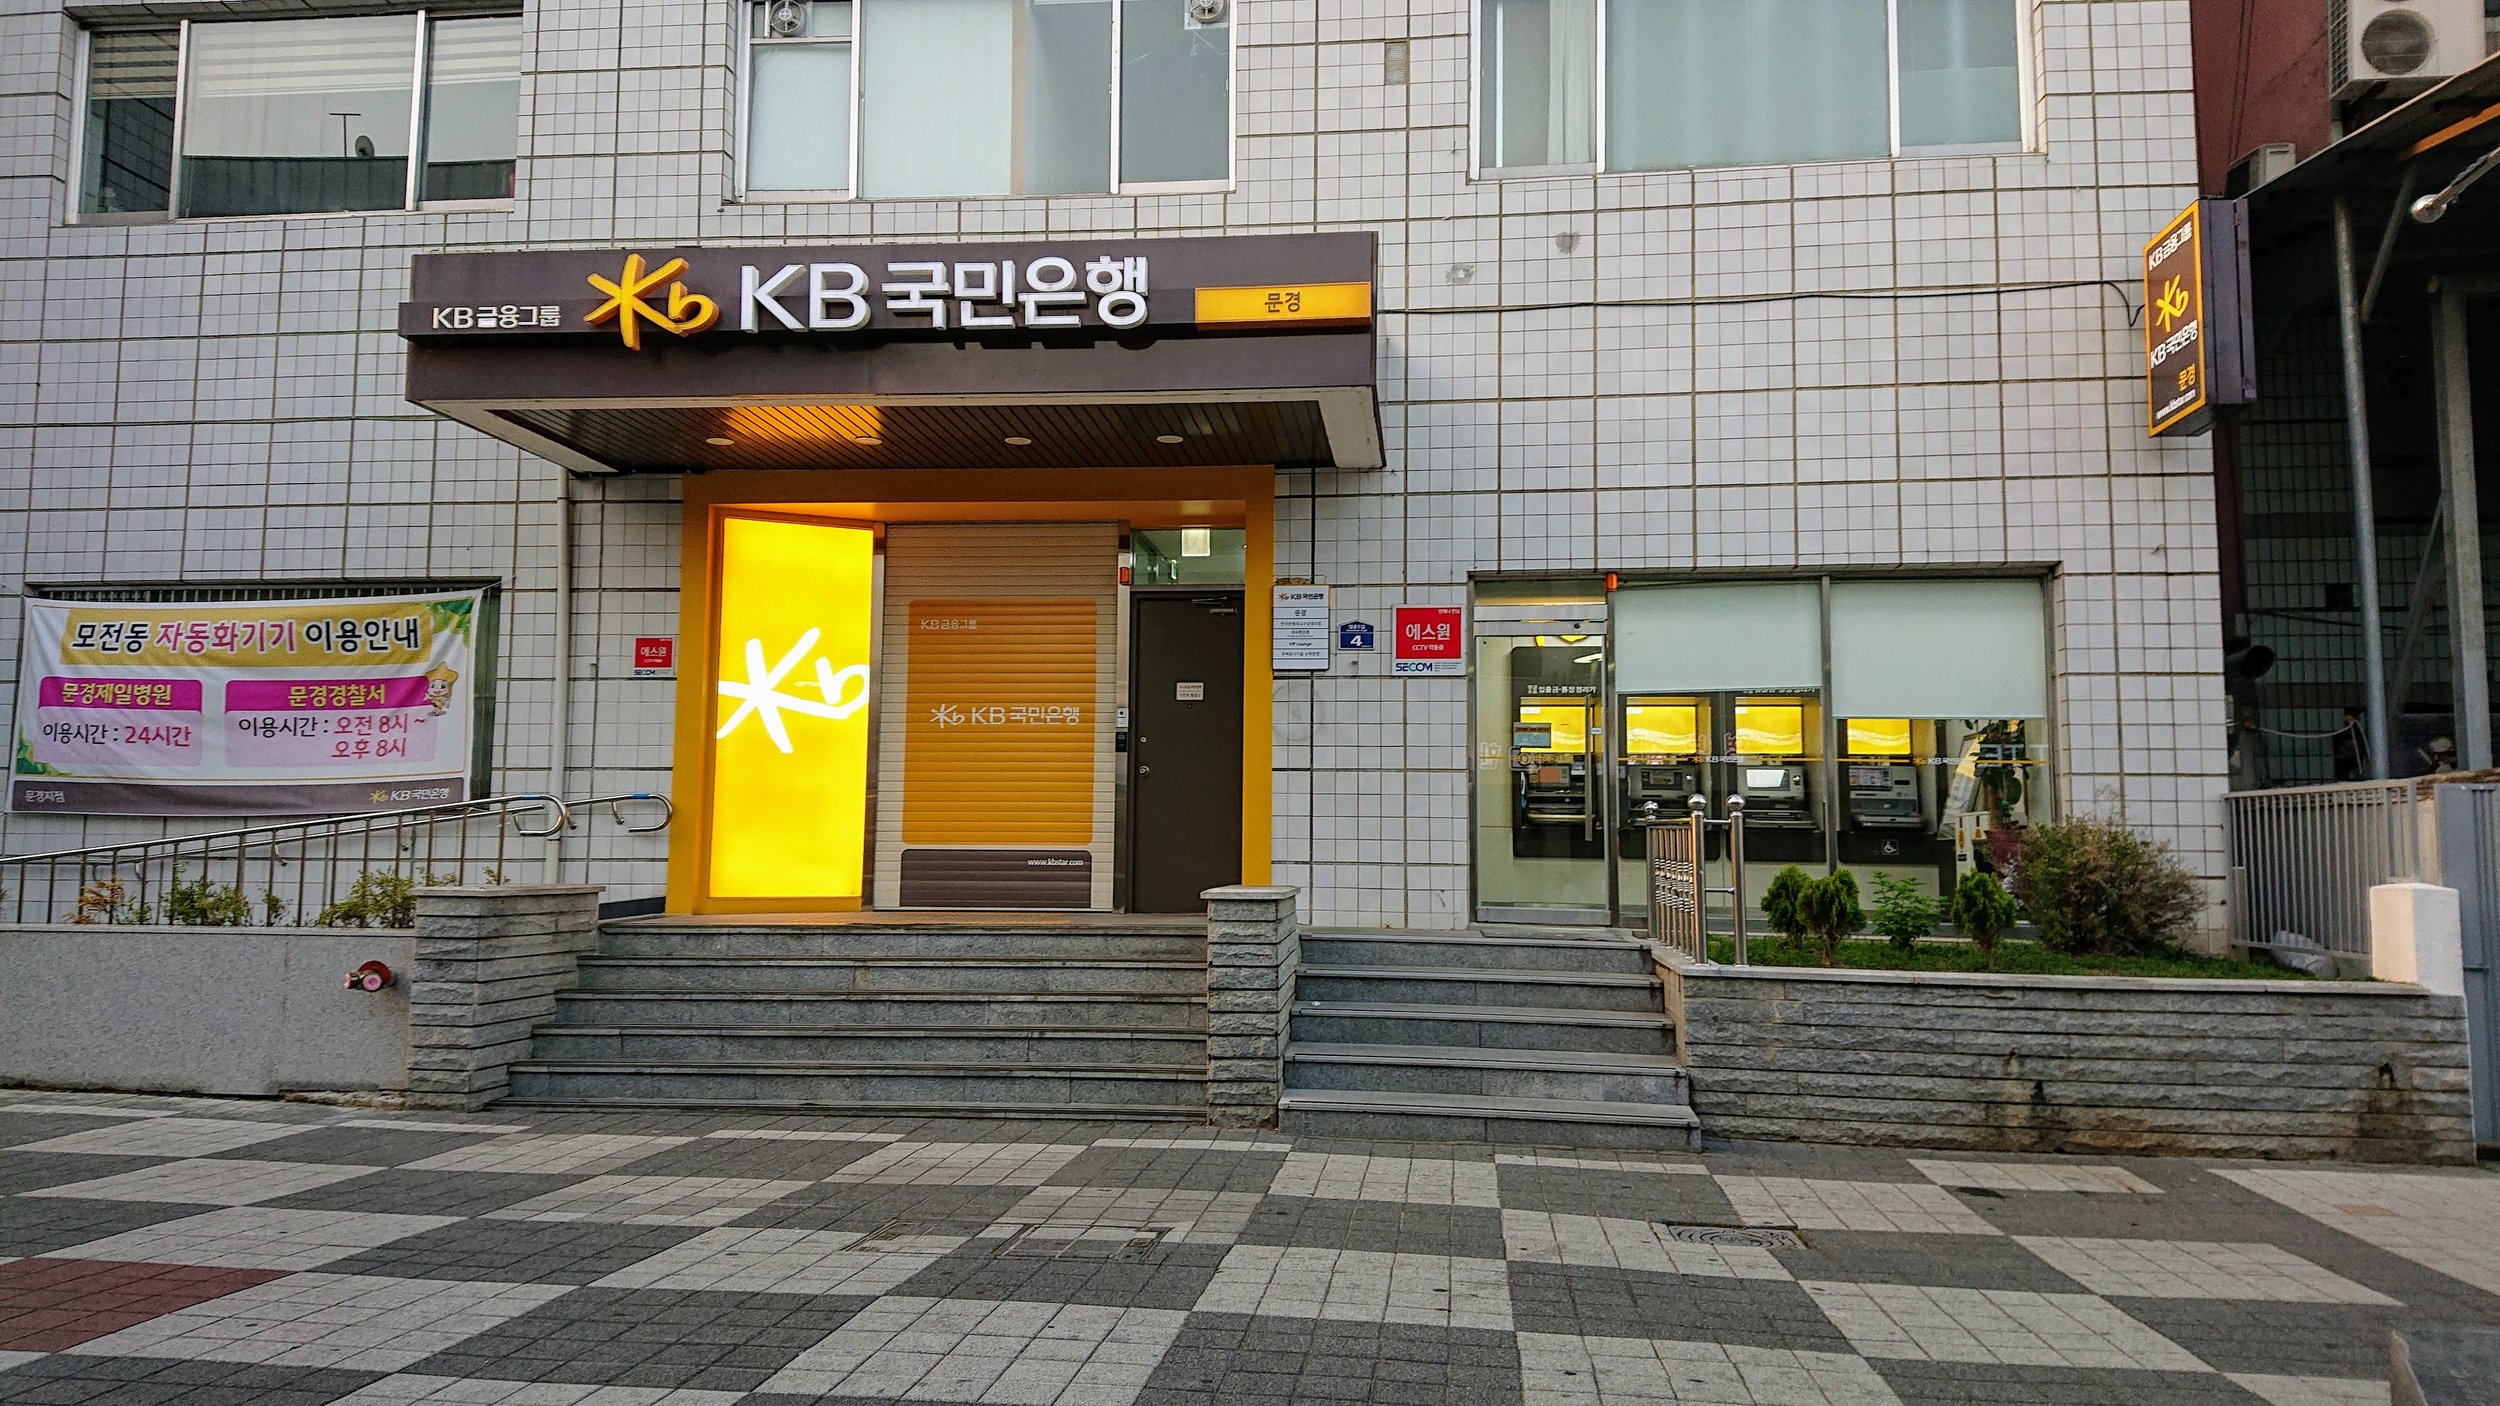 KB Bank on Jungang-ro sorted us out. We have found KB to be very reliable, so try this one first before the others to save yourself time and frustration.